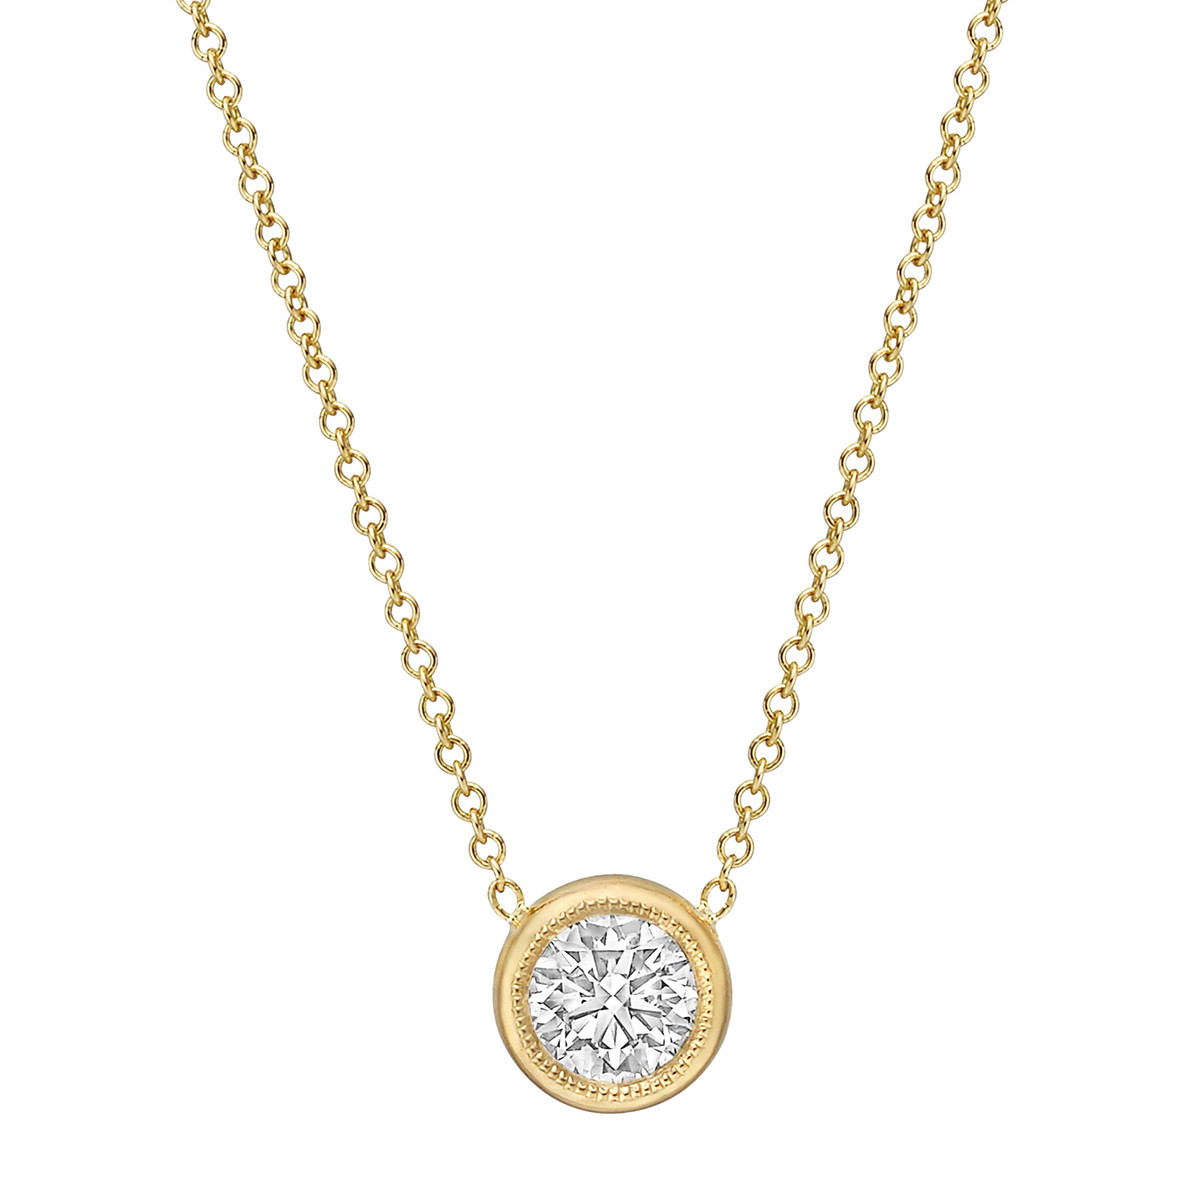 0.56 Carat Round Brilliant Diamond Solitaire Pendant